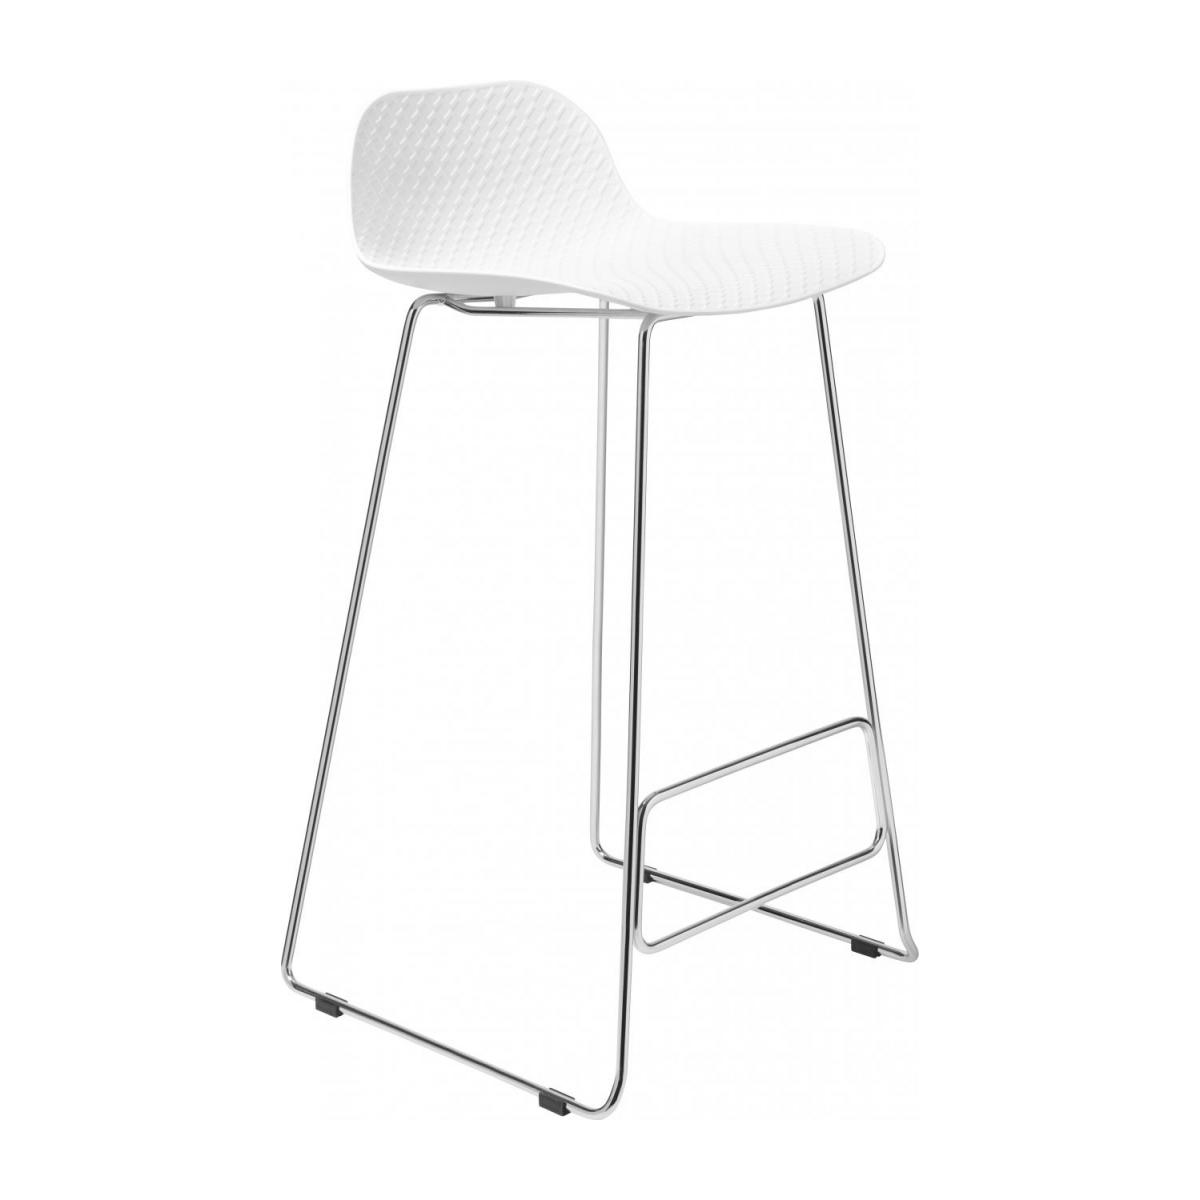 White high stool in polypropylene and lacquered steel legs n°1